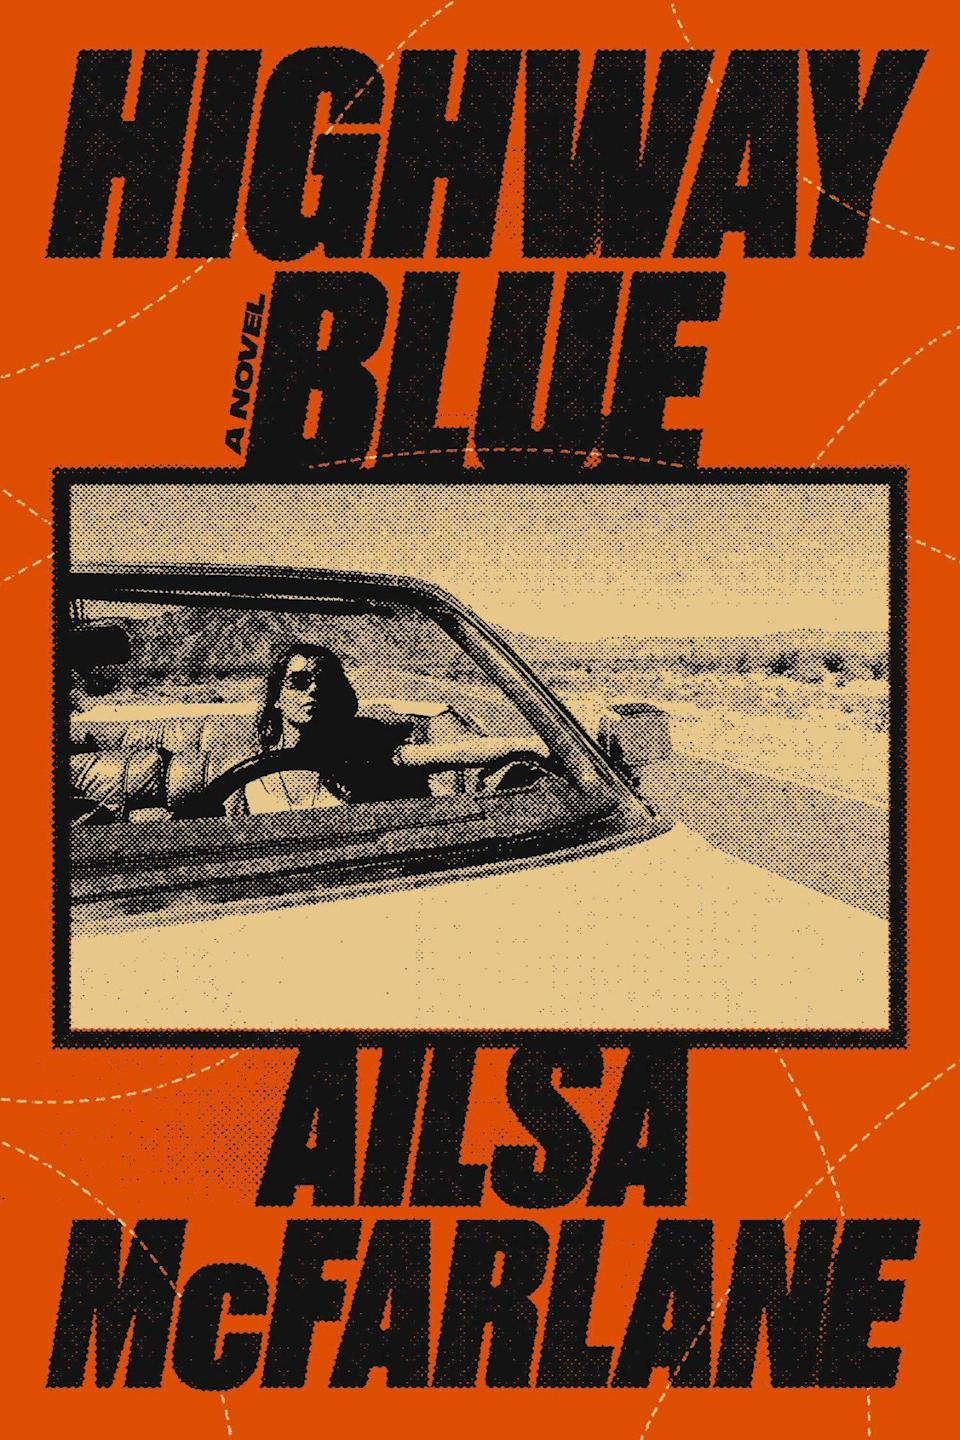 <p>The classic road trip novel gets a modern upgrade thanks to McFarlane, a highly promising young writer who's crafted a story about a young couple forced to flee their town (the fictional San Padua) by car. (May 18)</p>